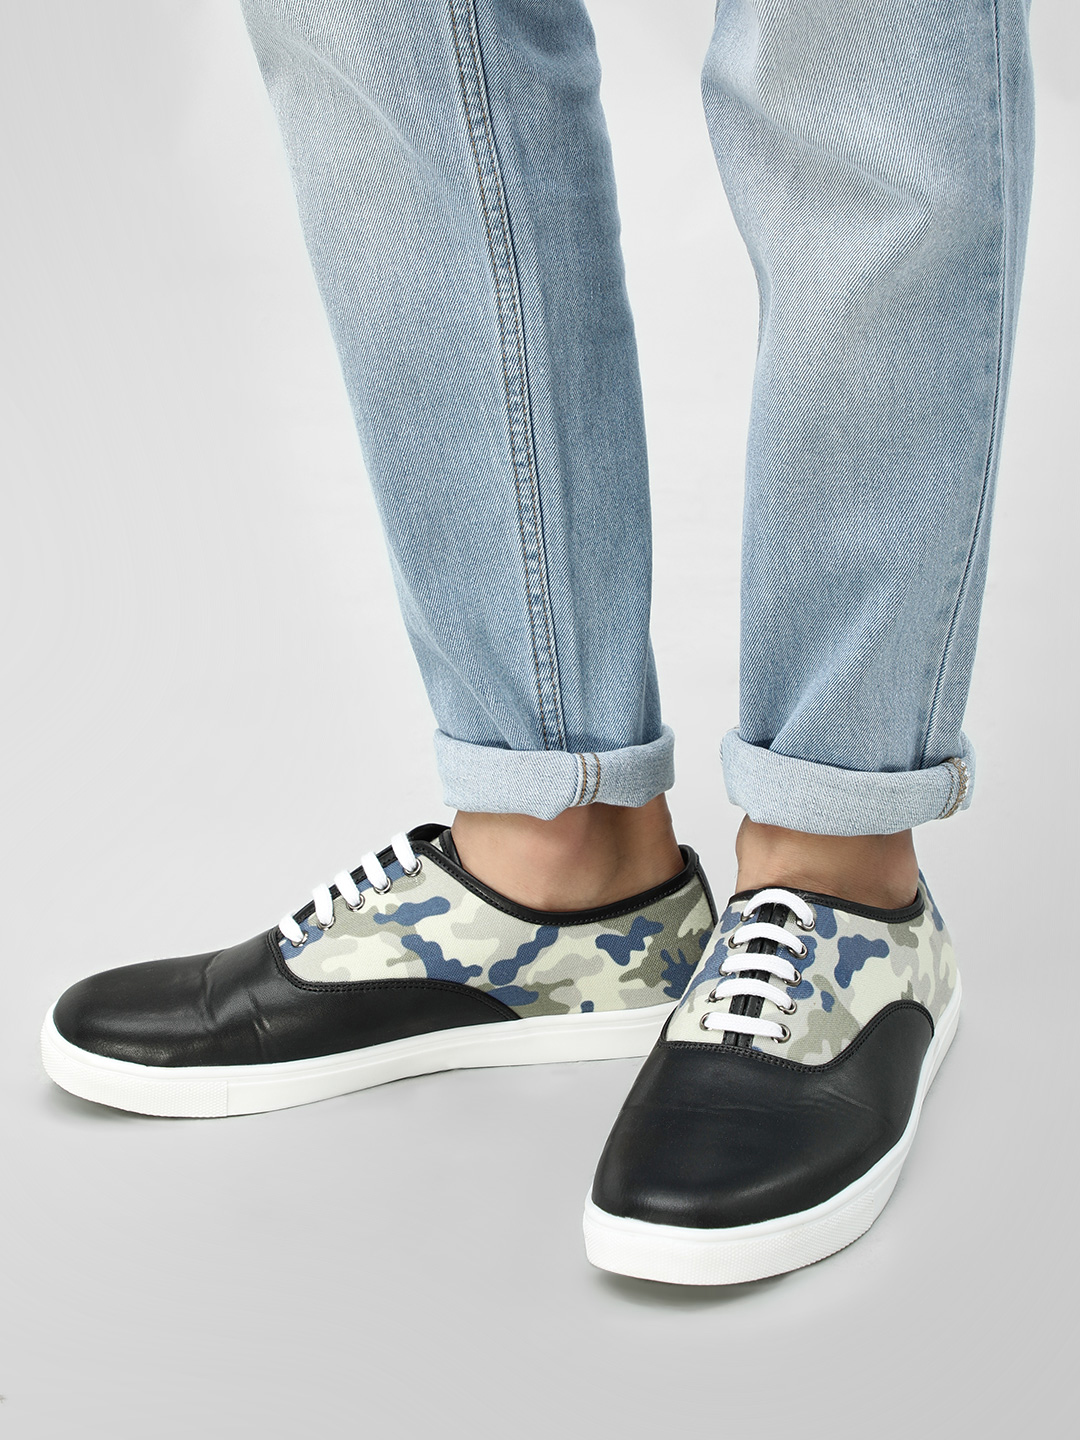 KOOVS Black Lace-Up Cup Sole Sneakers 1